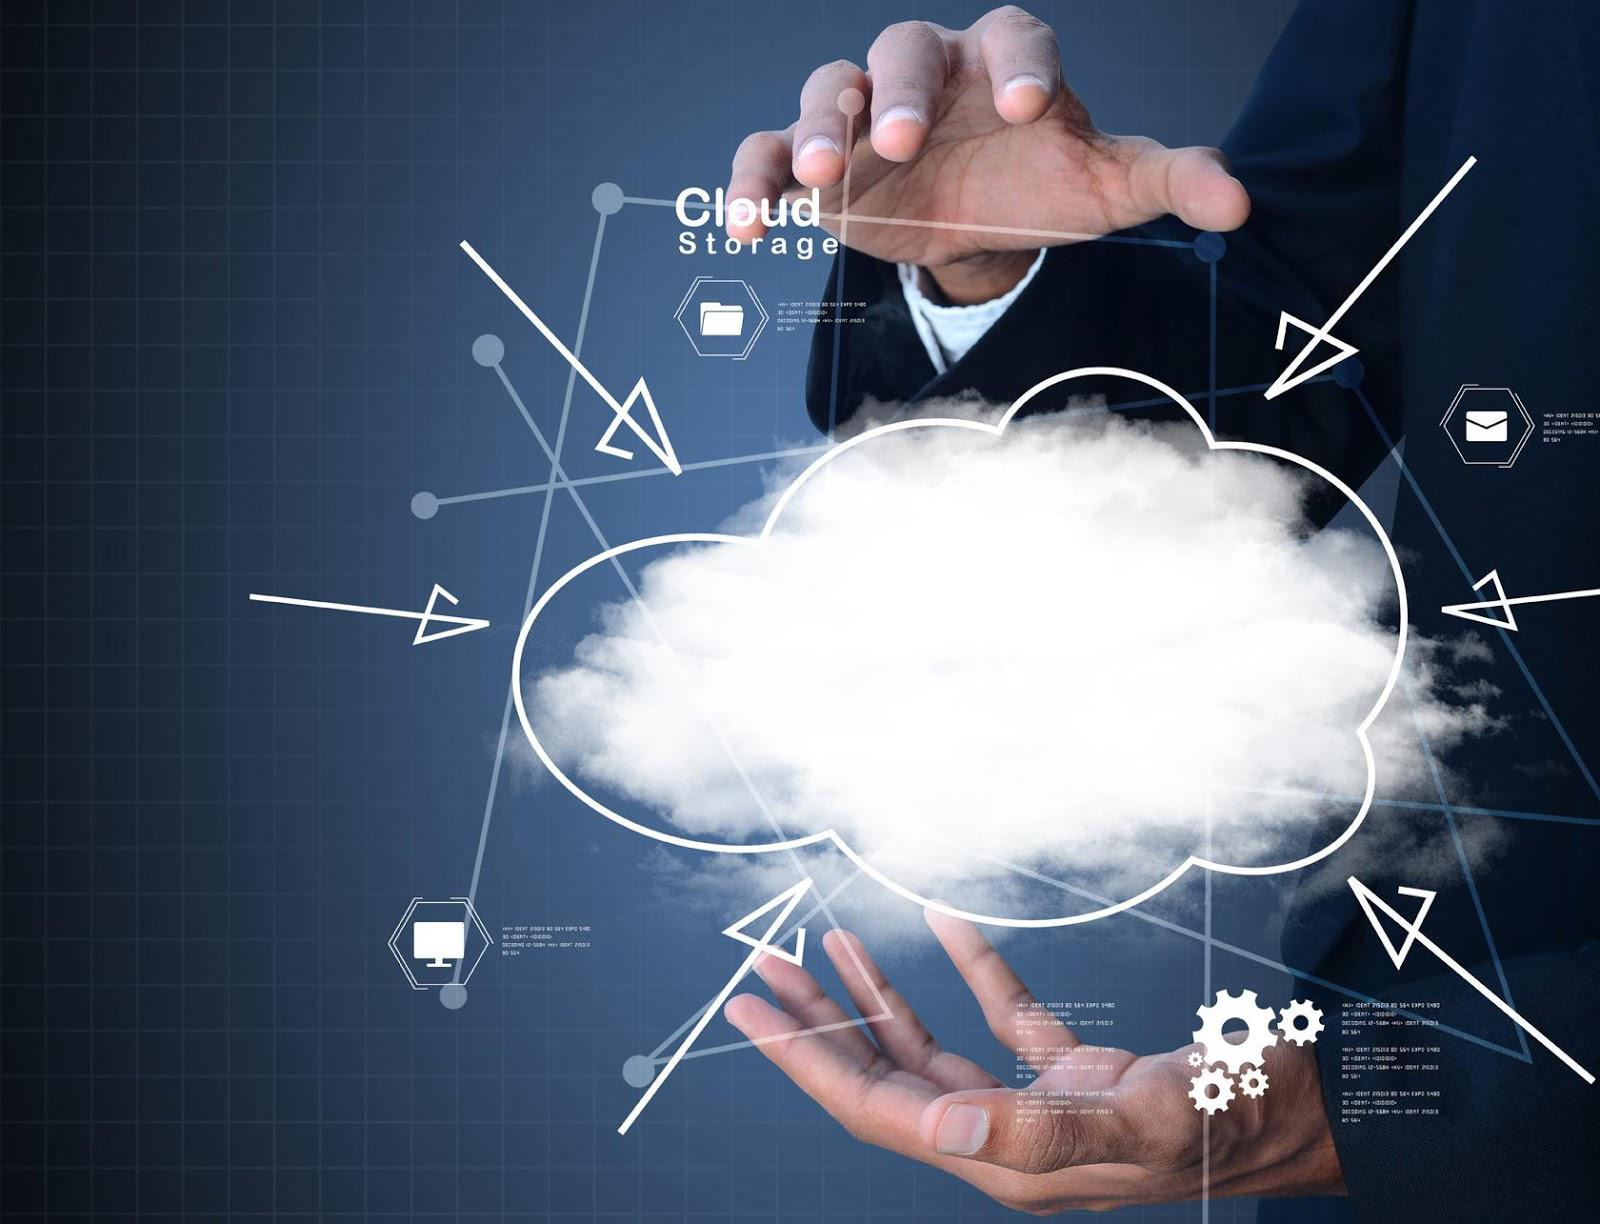 There Are Quite A Lot Of Misconceptions About What Cloud Storage Actually Is And How It Can Help Business Many People Don T Understand At All